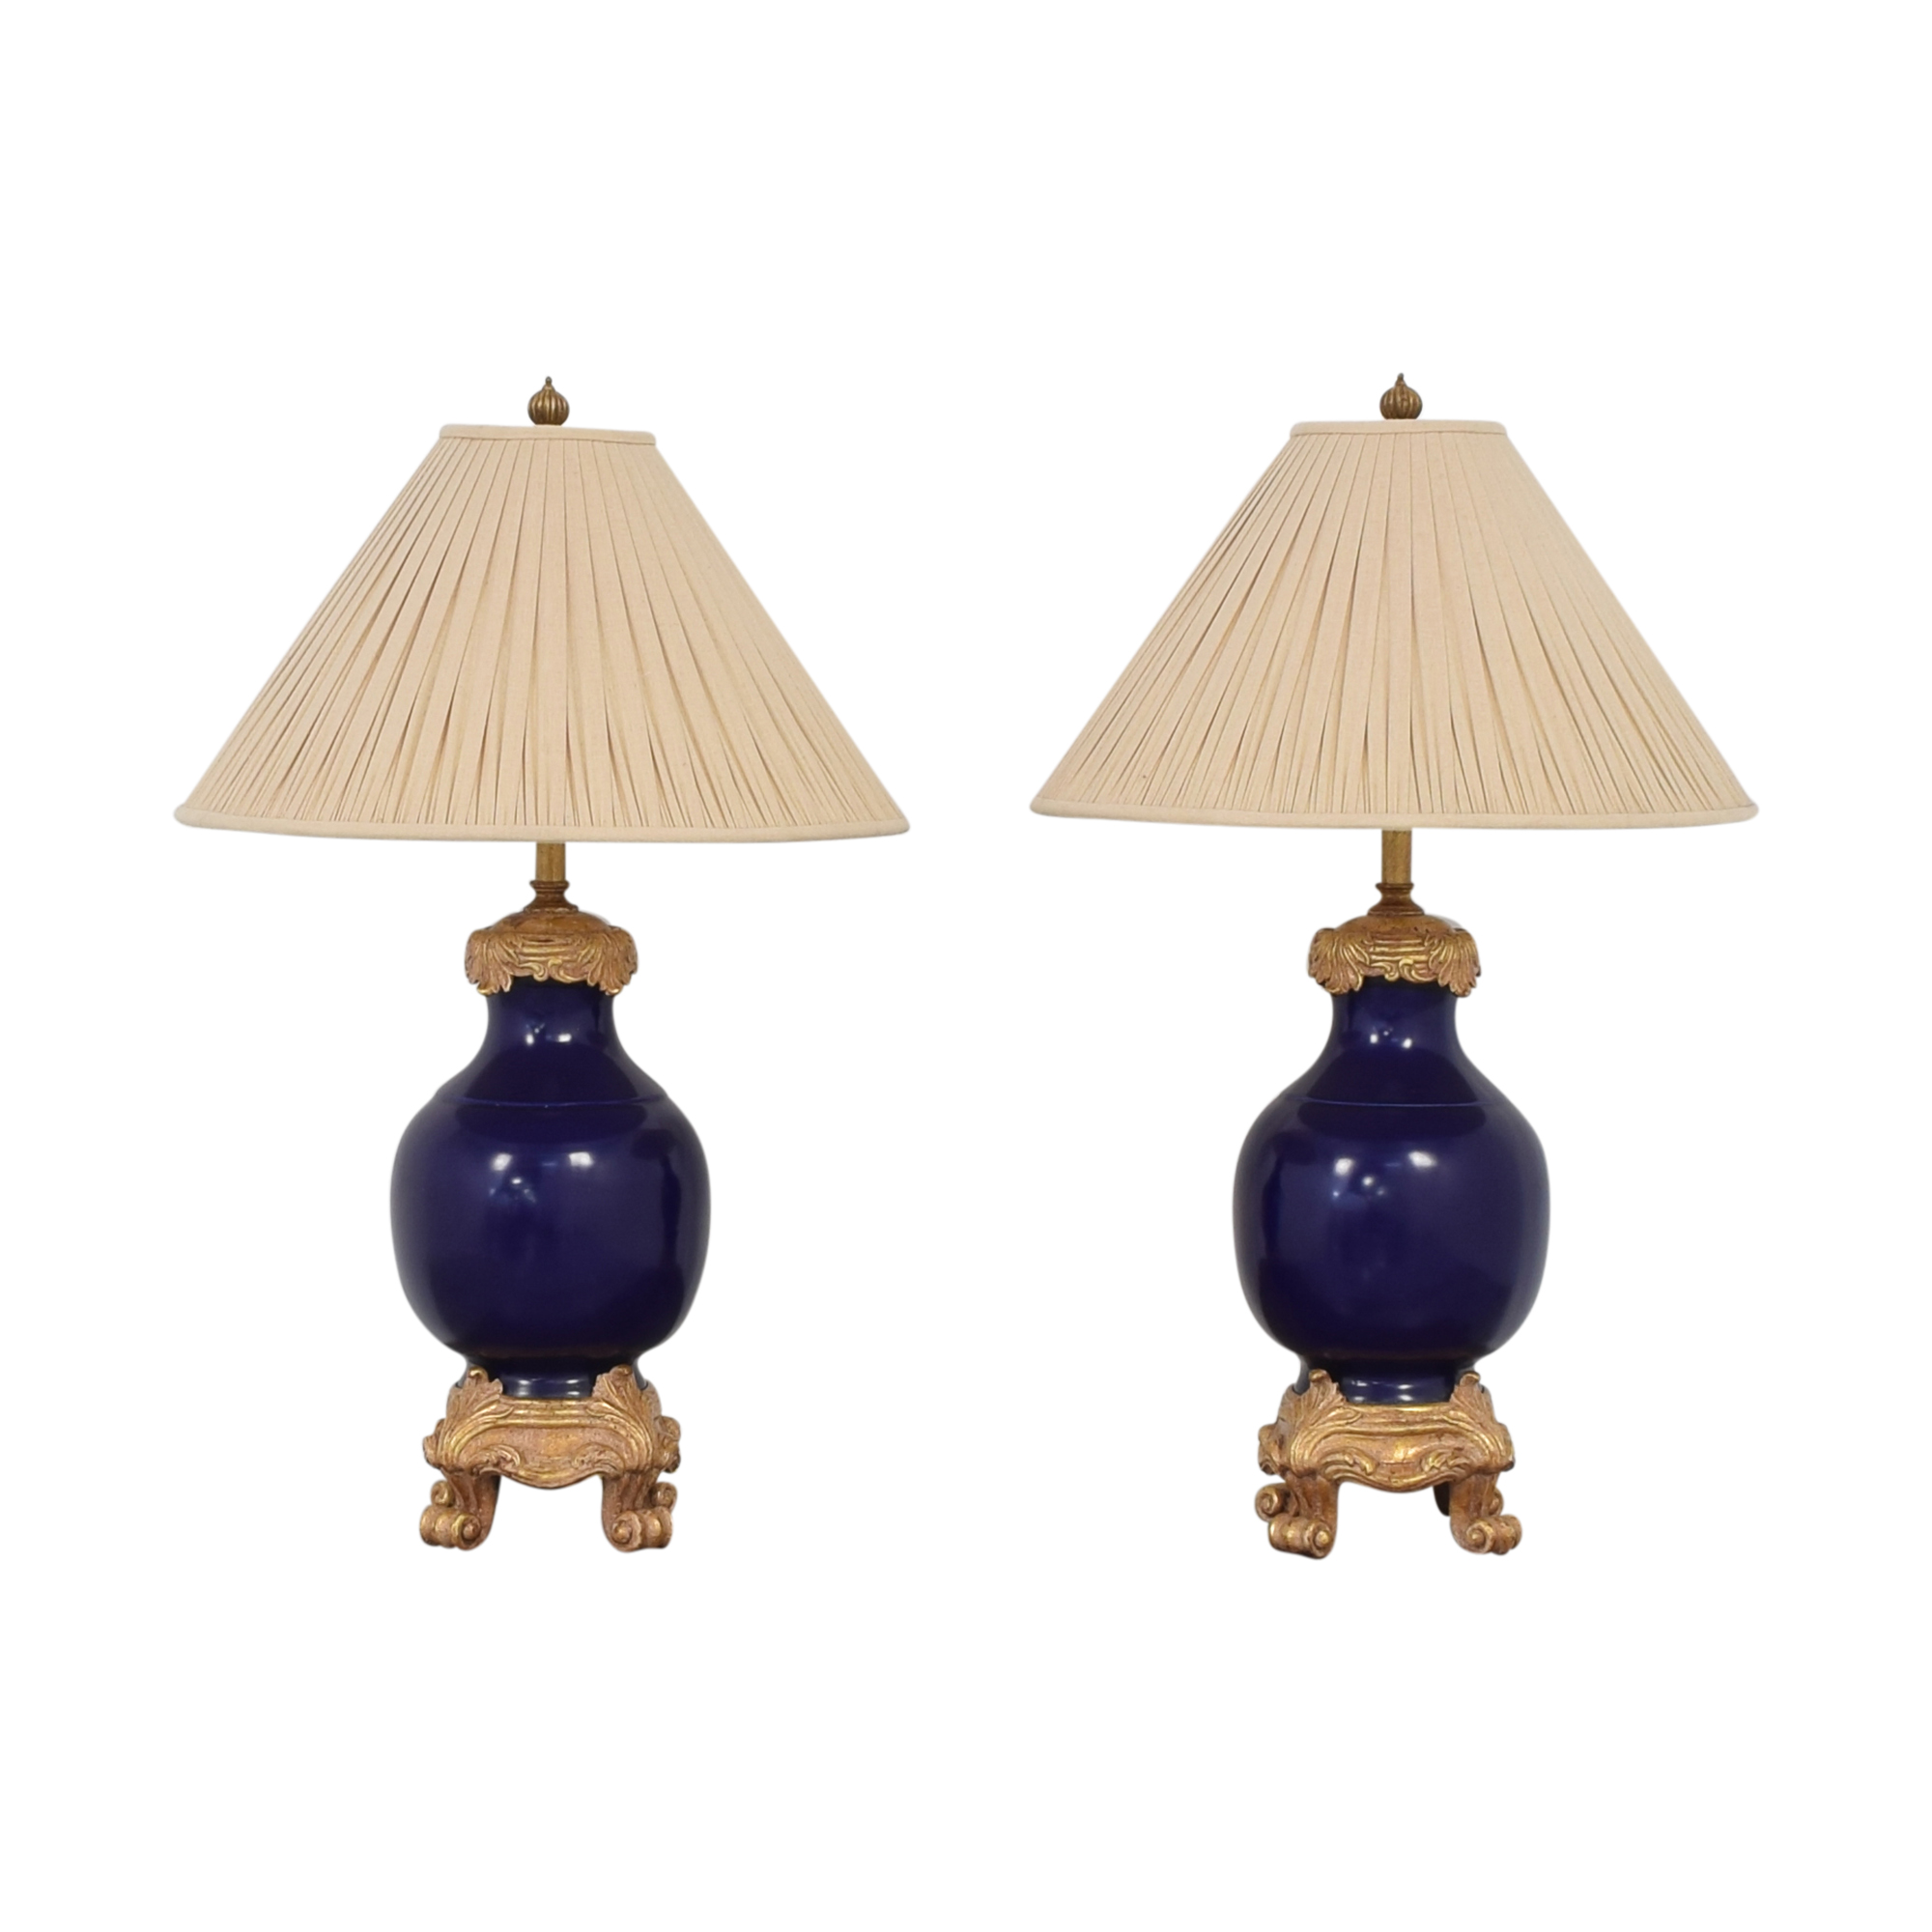 Urn Table Lamps / Decor